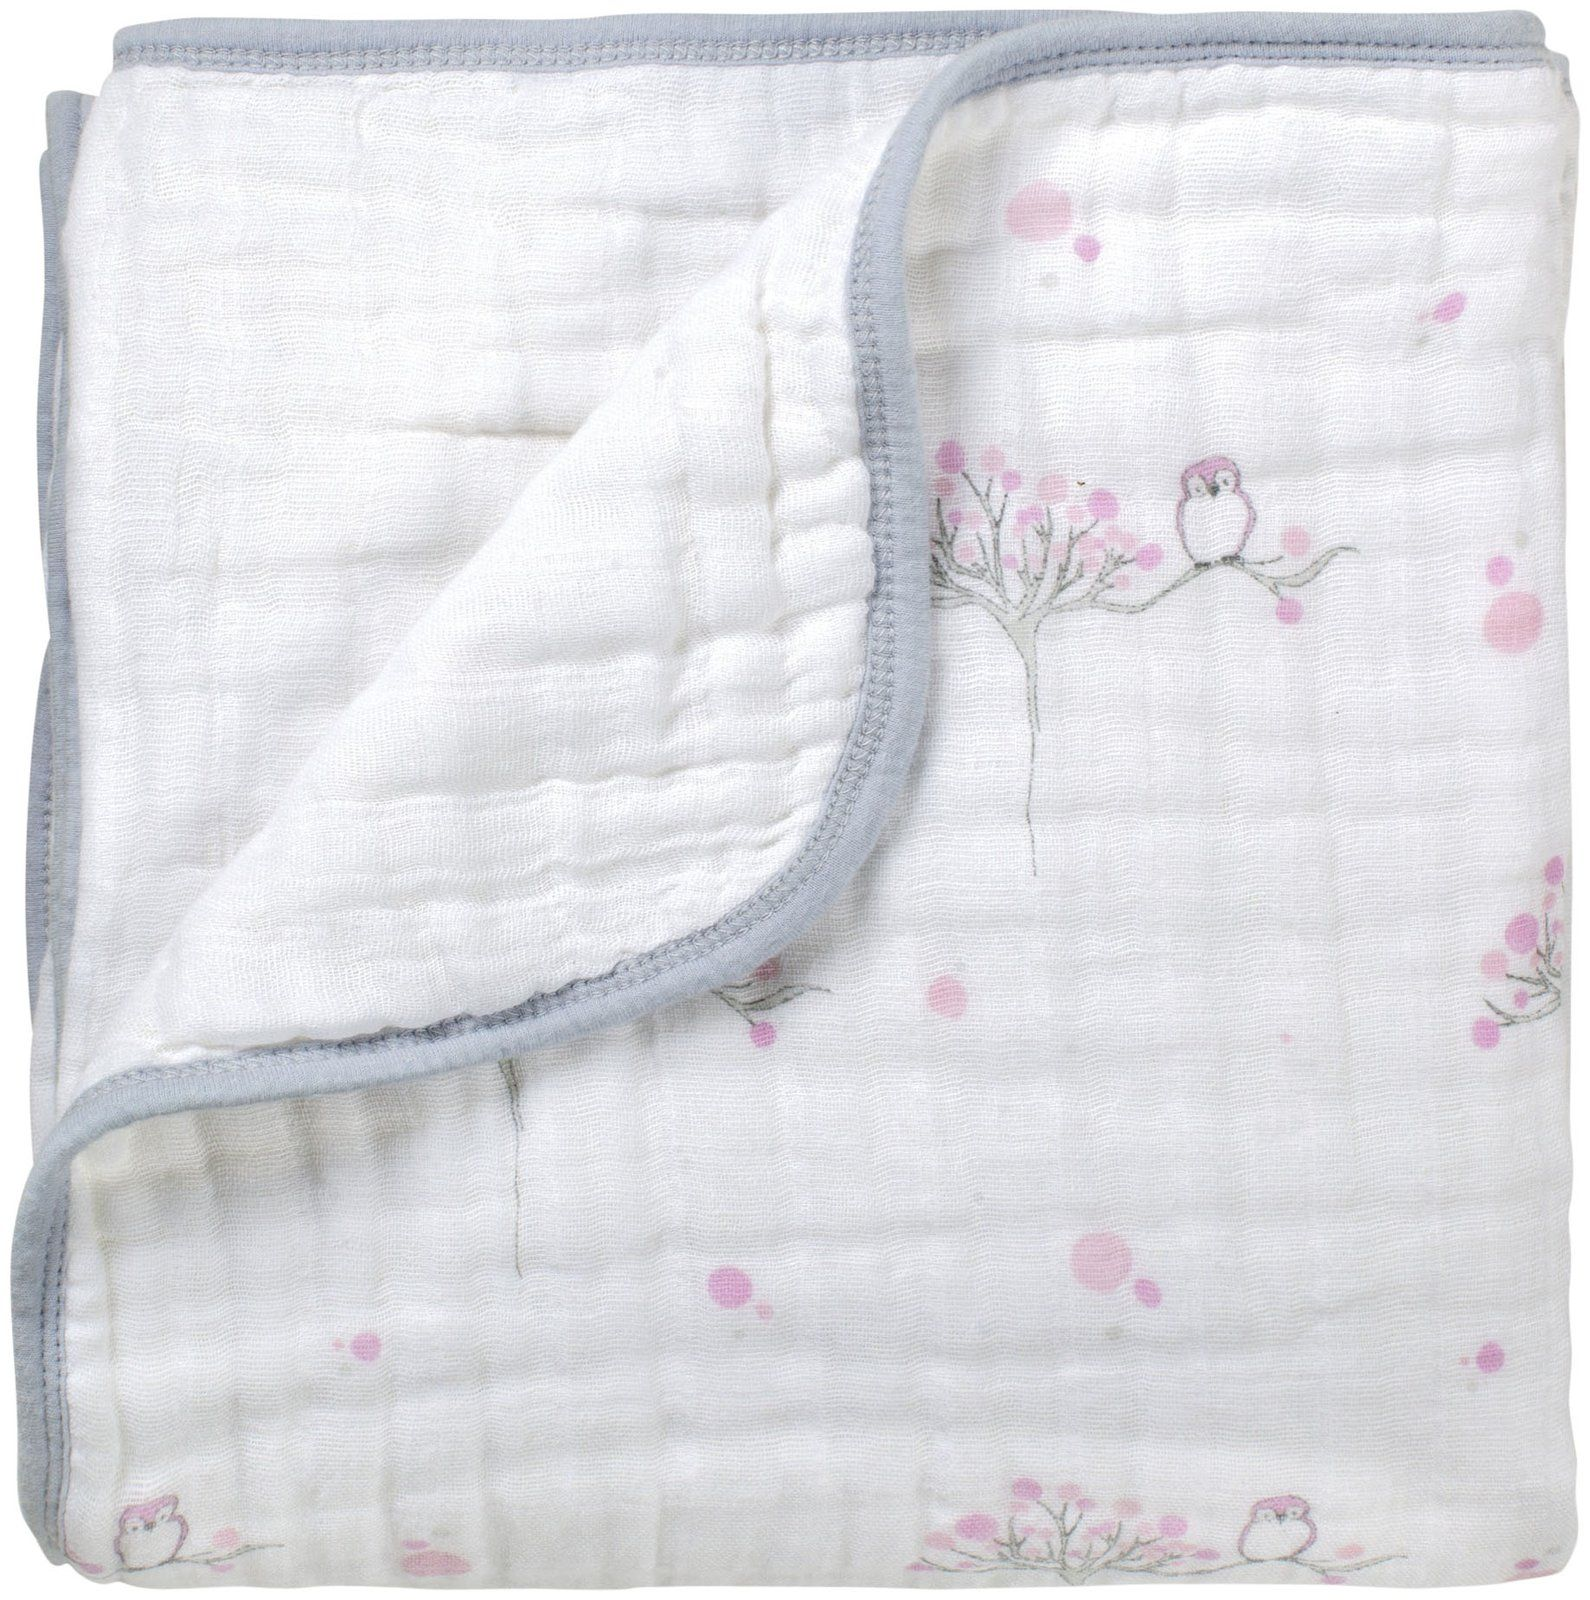 Aden And Anais Swaddle Blankets Fair Aden  Anais 100% Cotton Muslin Dream Blanket  Free Shipping  Cute Design Ideas